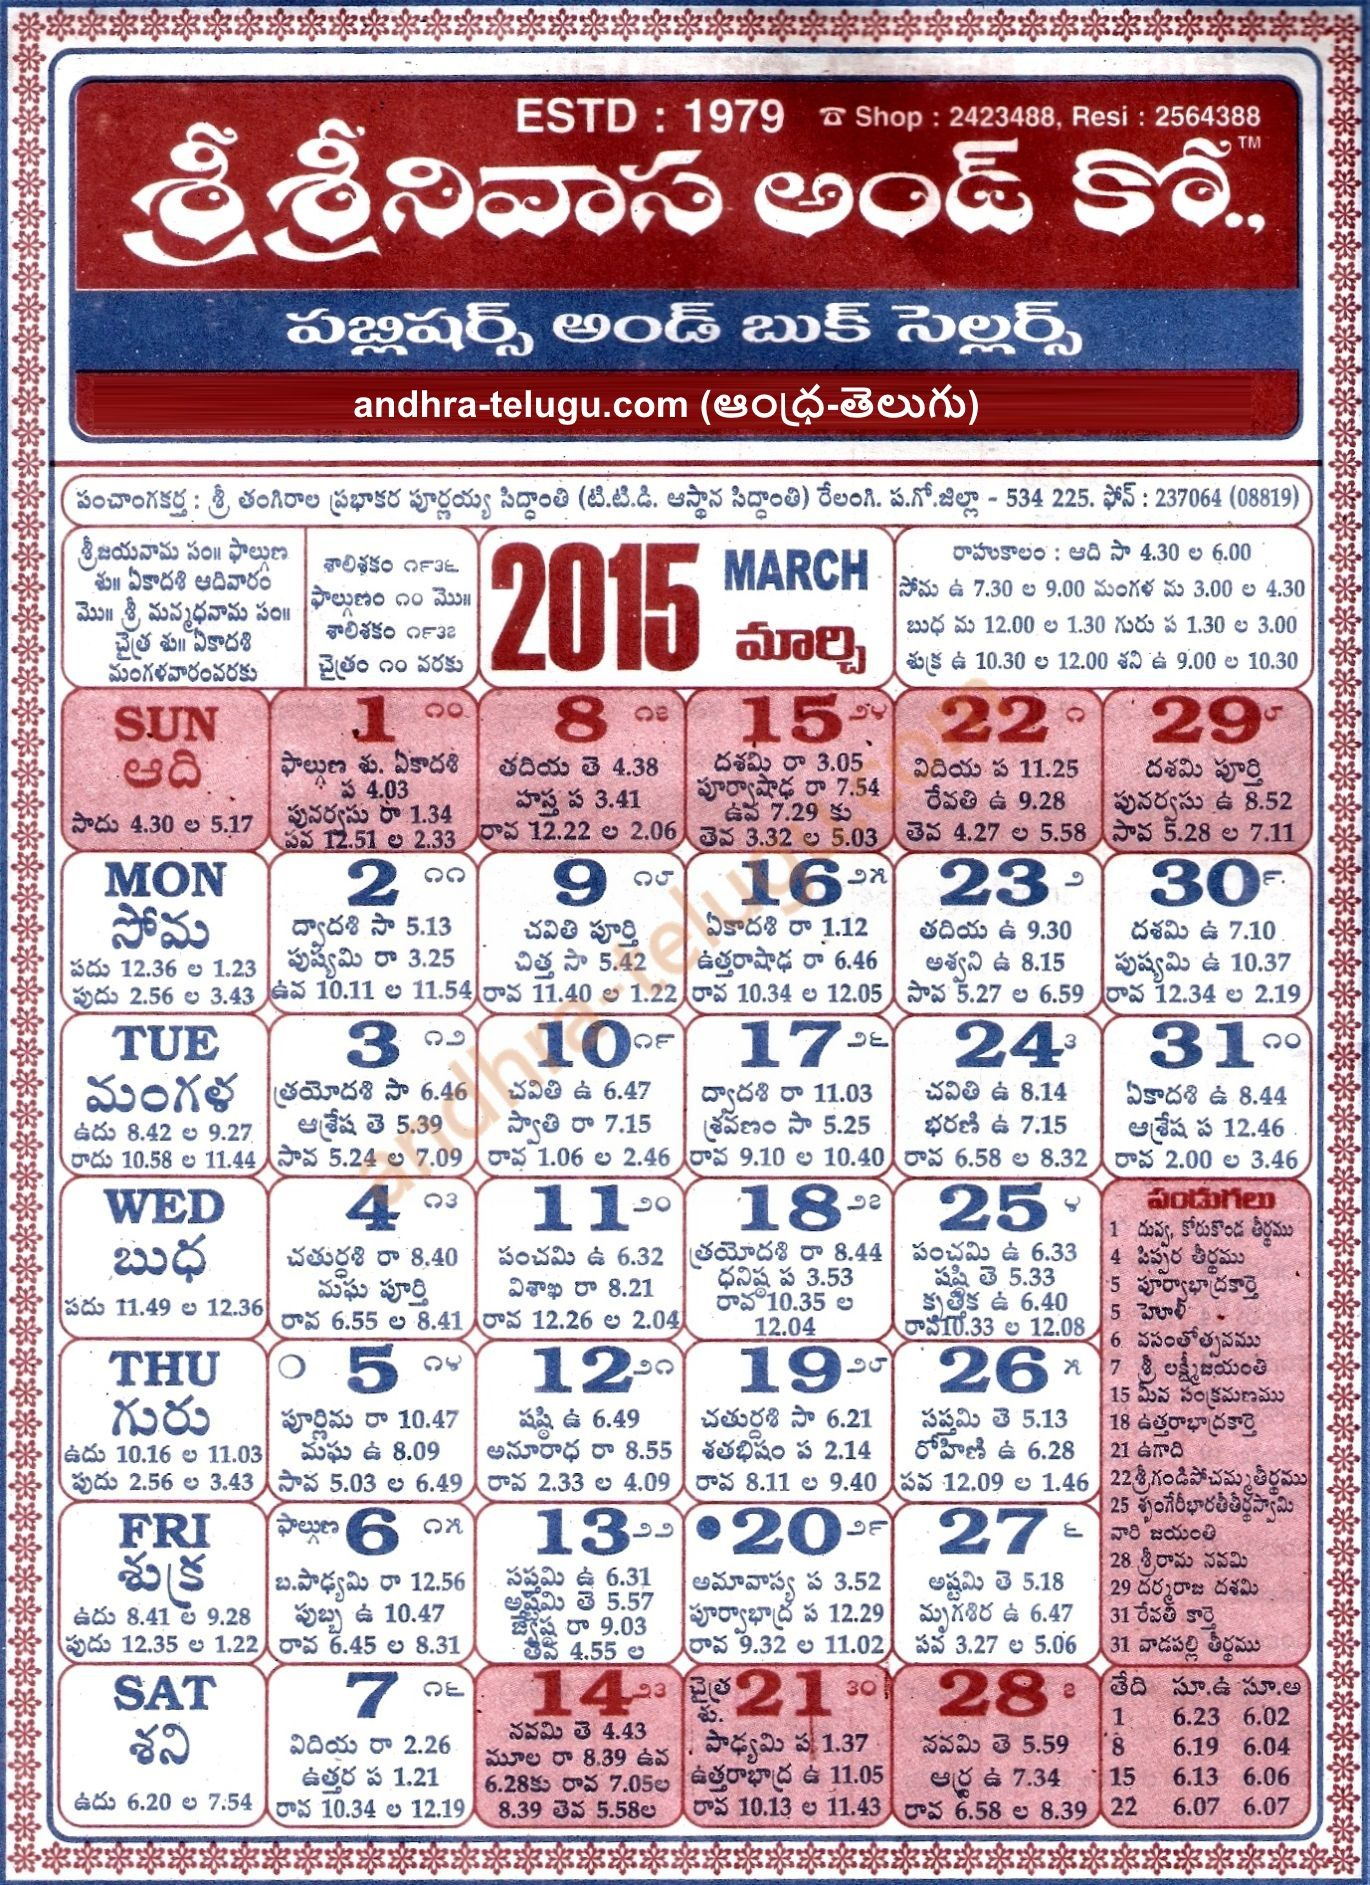 Telugu Calendar 2015 March (With Images) | July Calendar Throughout How To Read Telugu Calendar